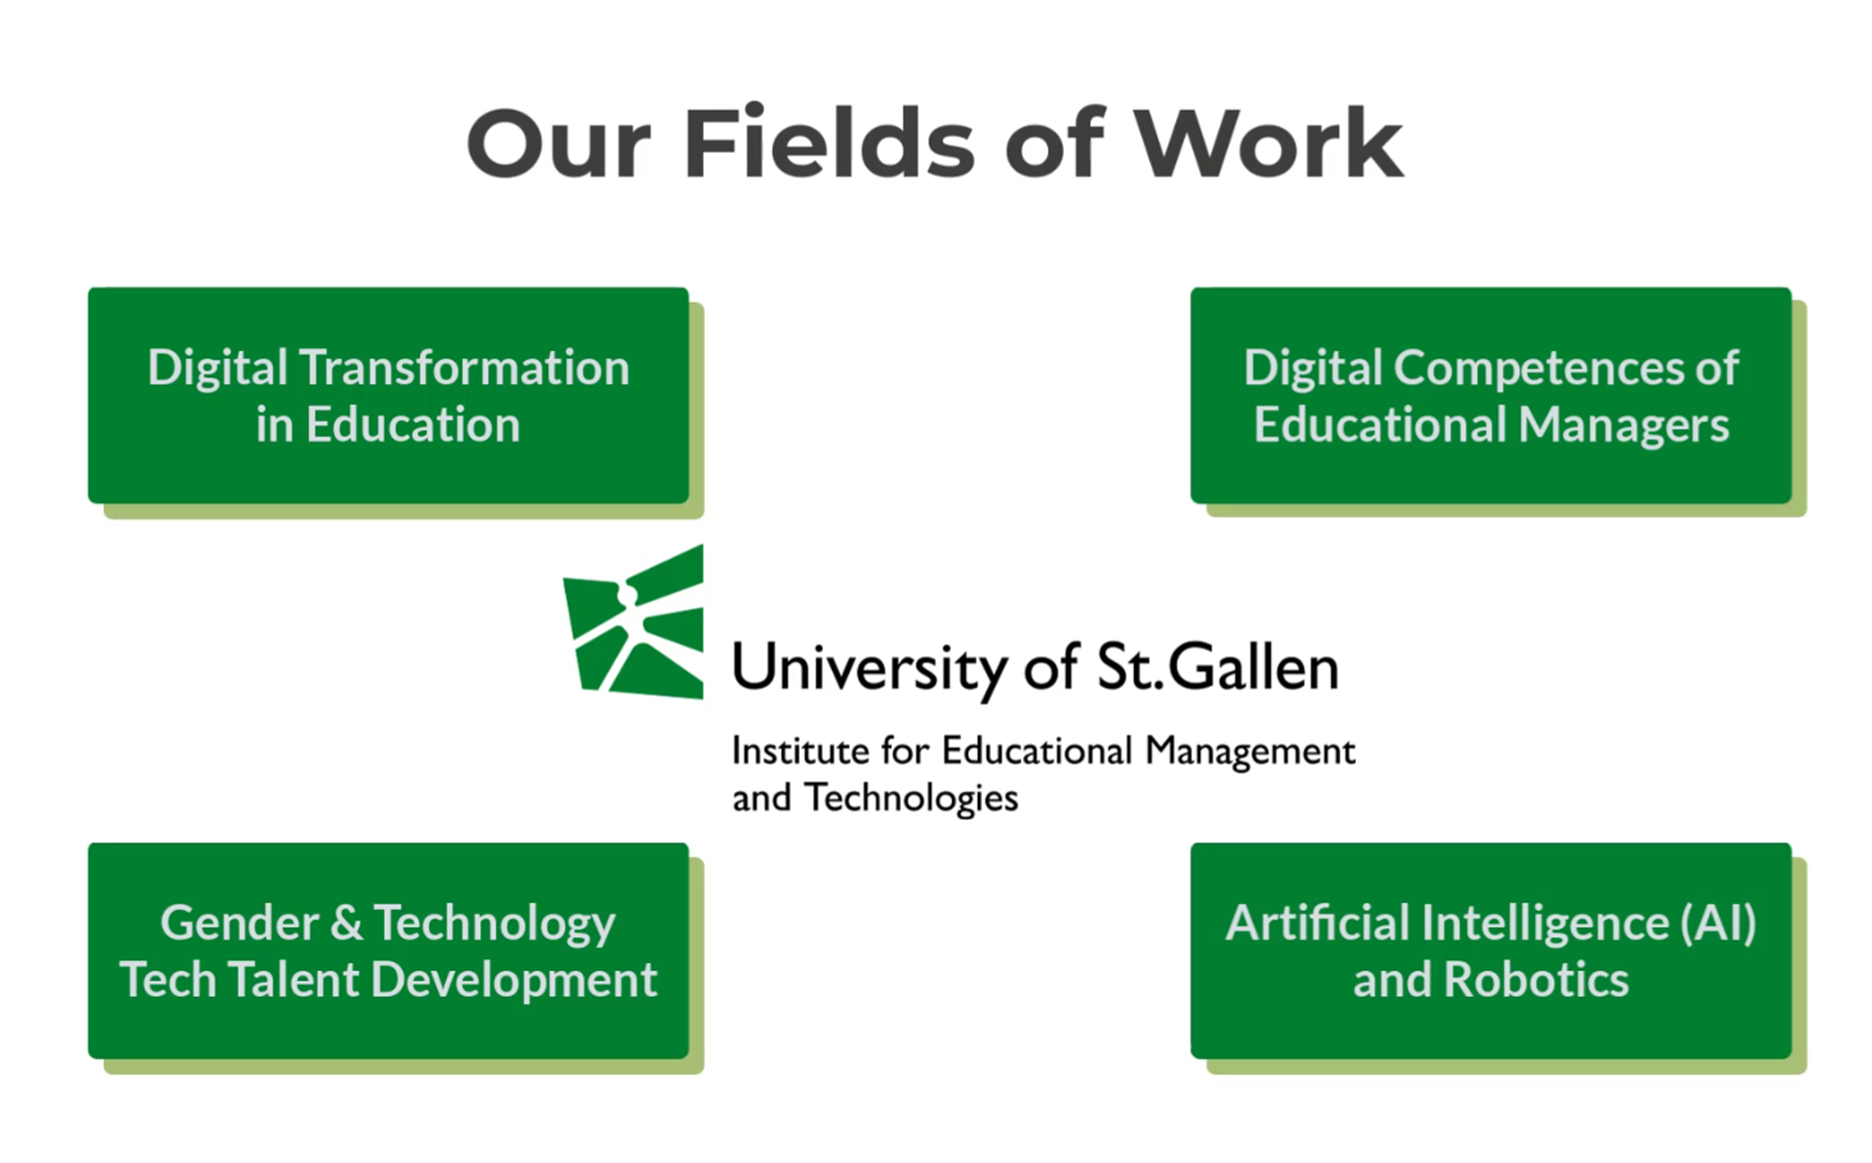 our Fields of Work